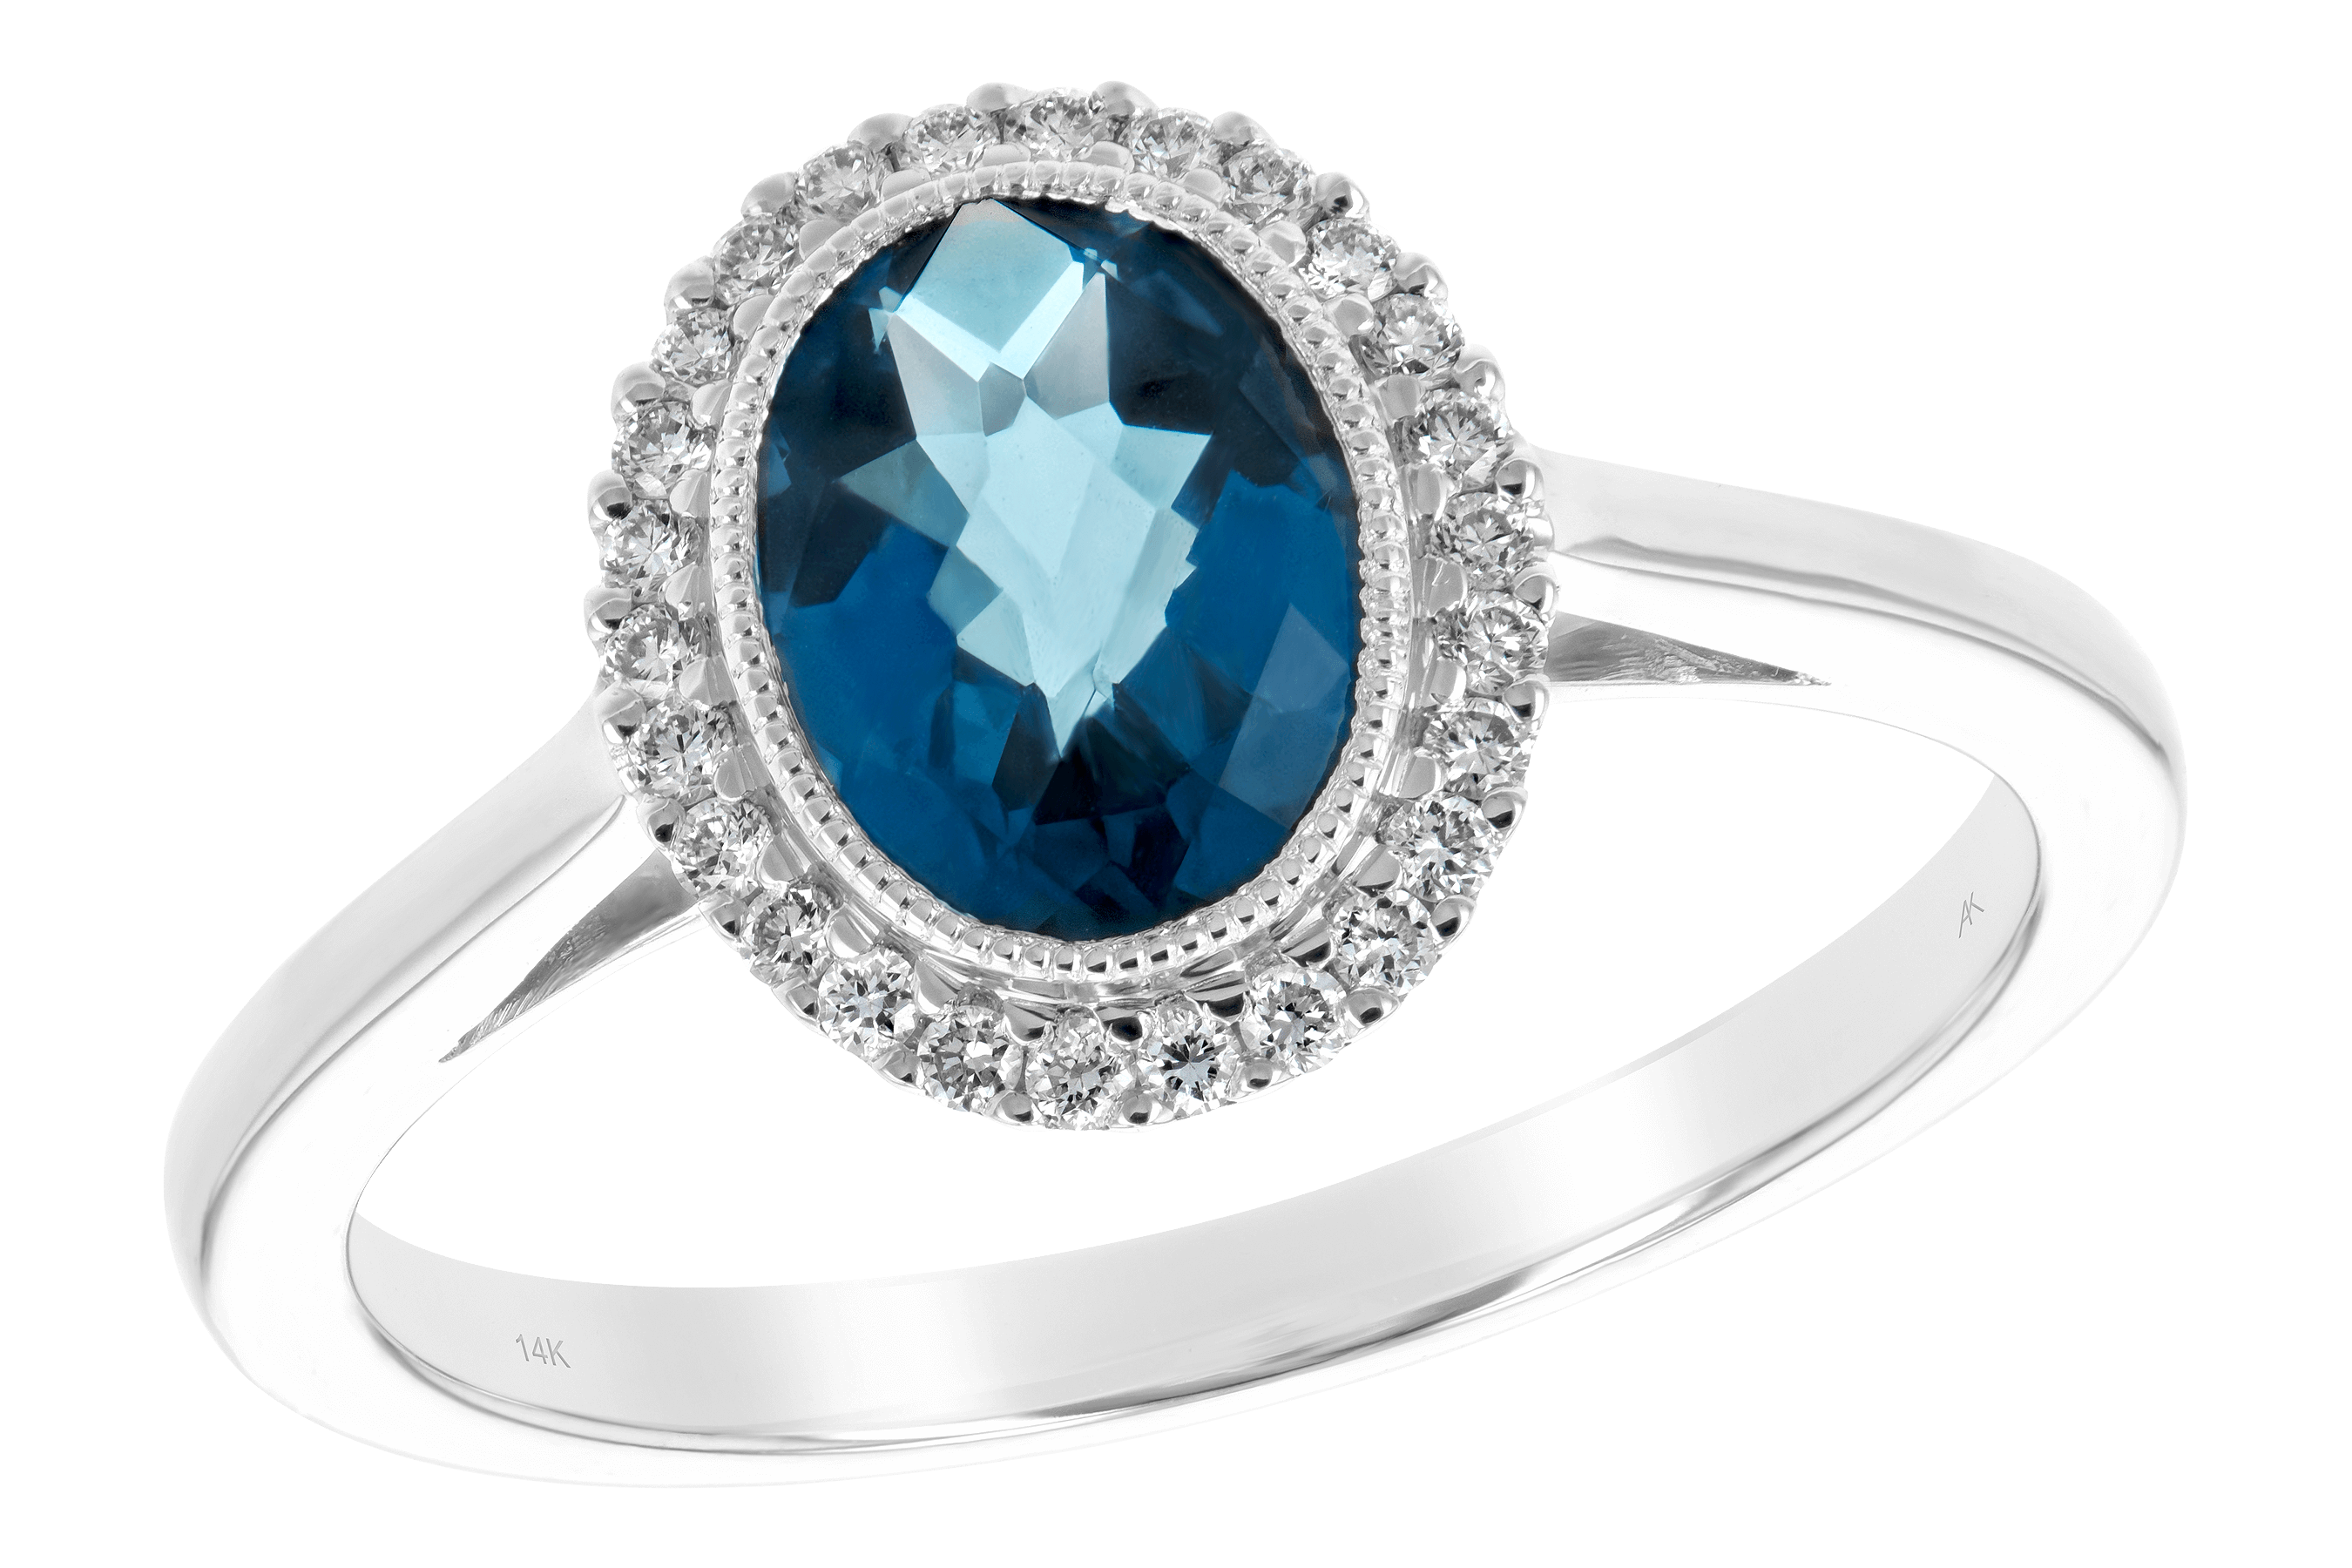 K189-19749: LDS RG 1.27 LONDON BLUE TOPAZ 1.42 TGW